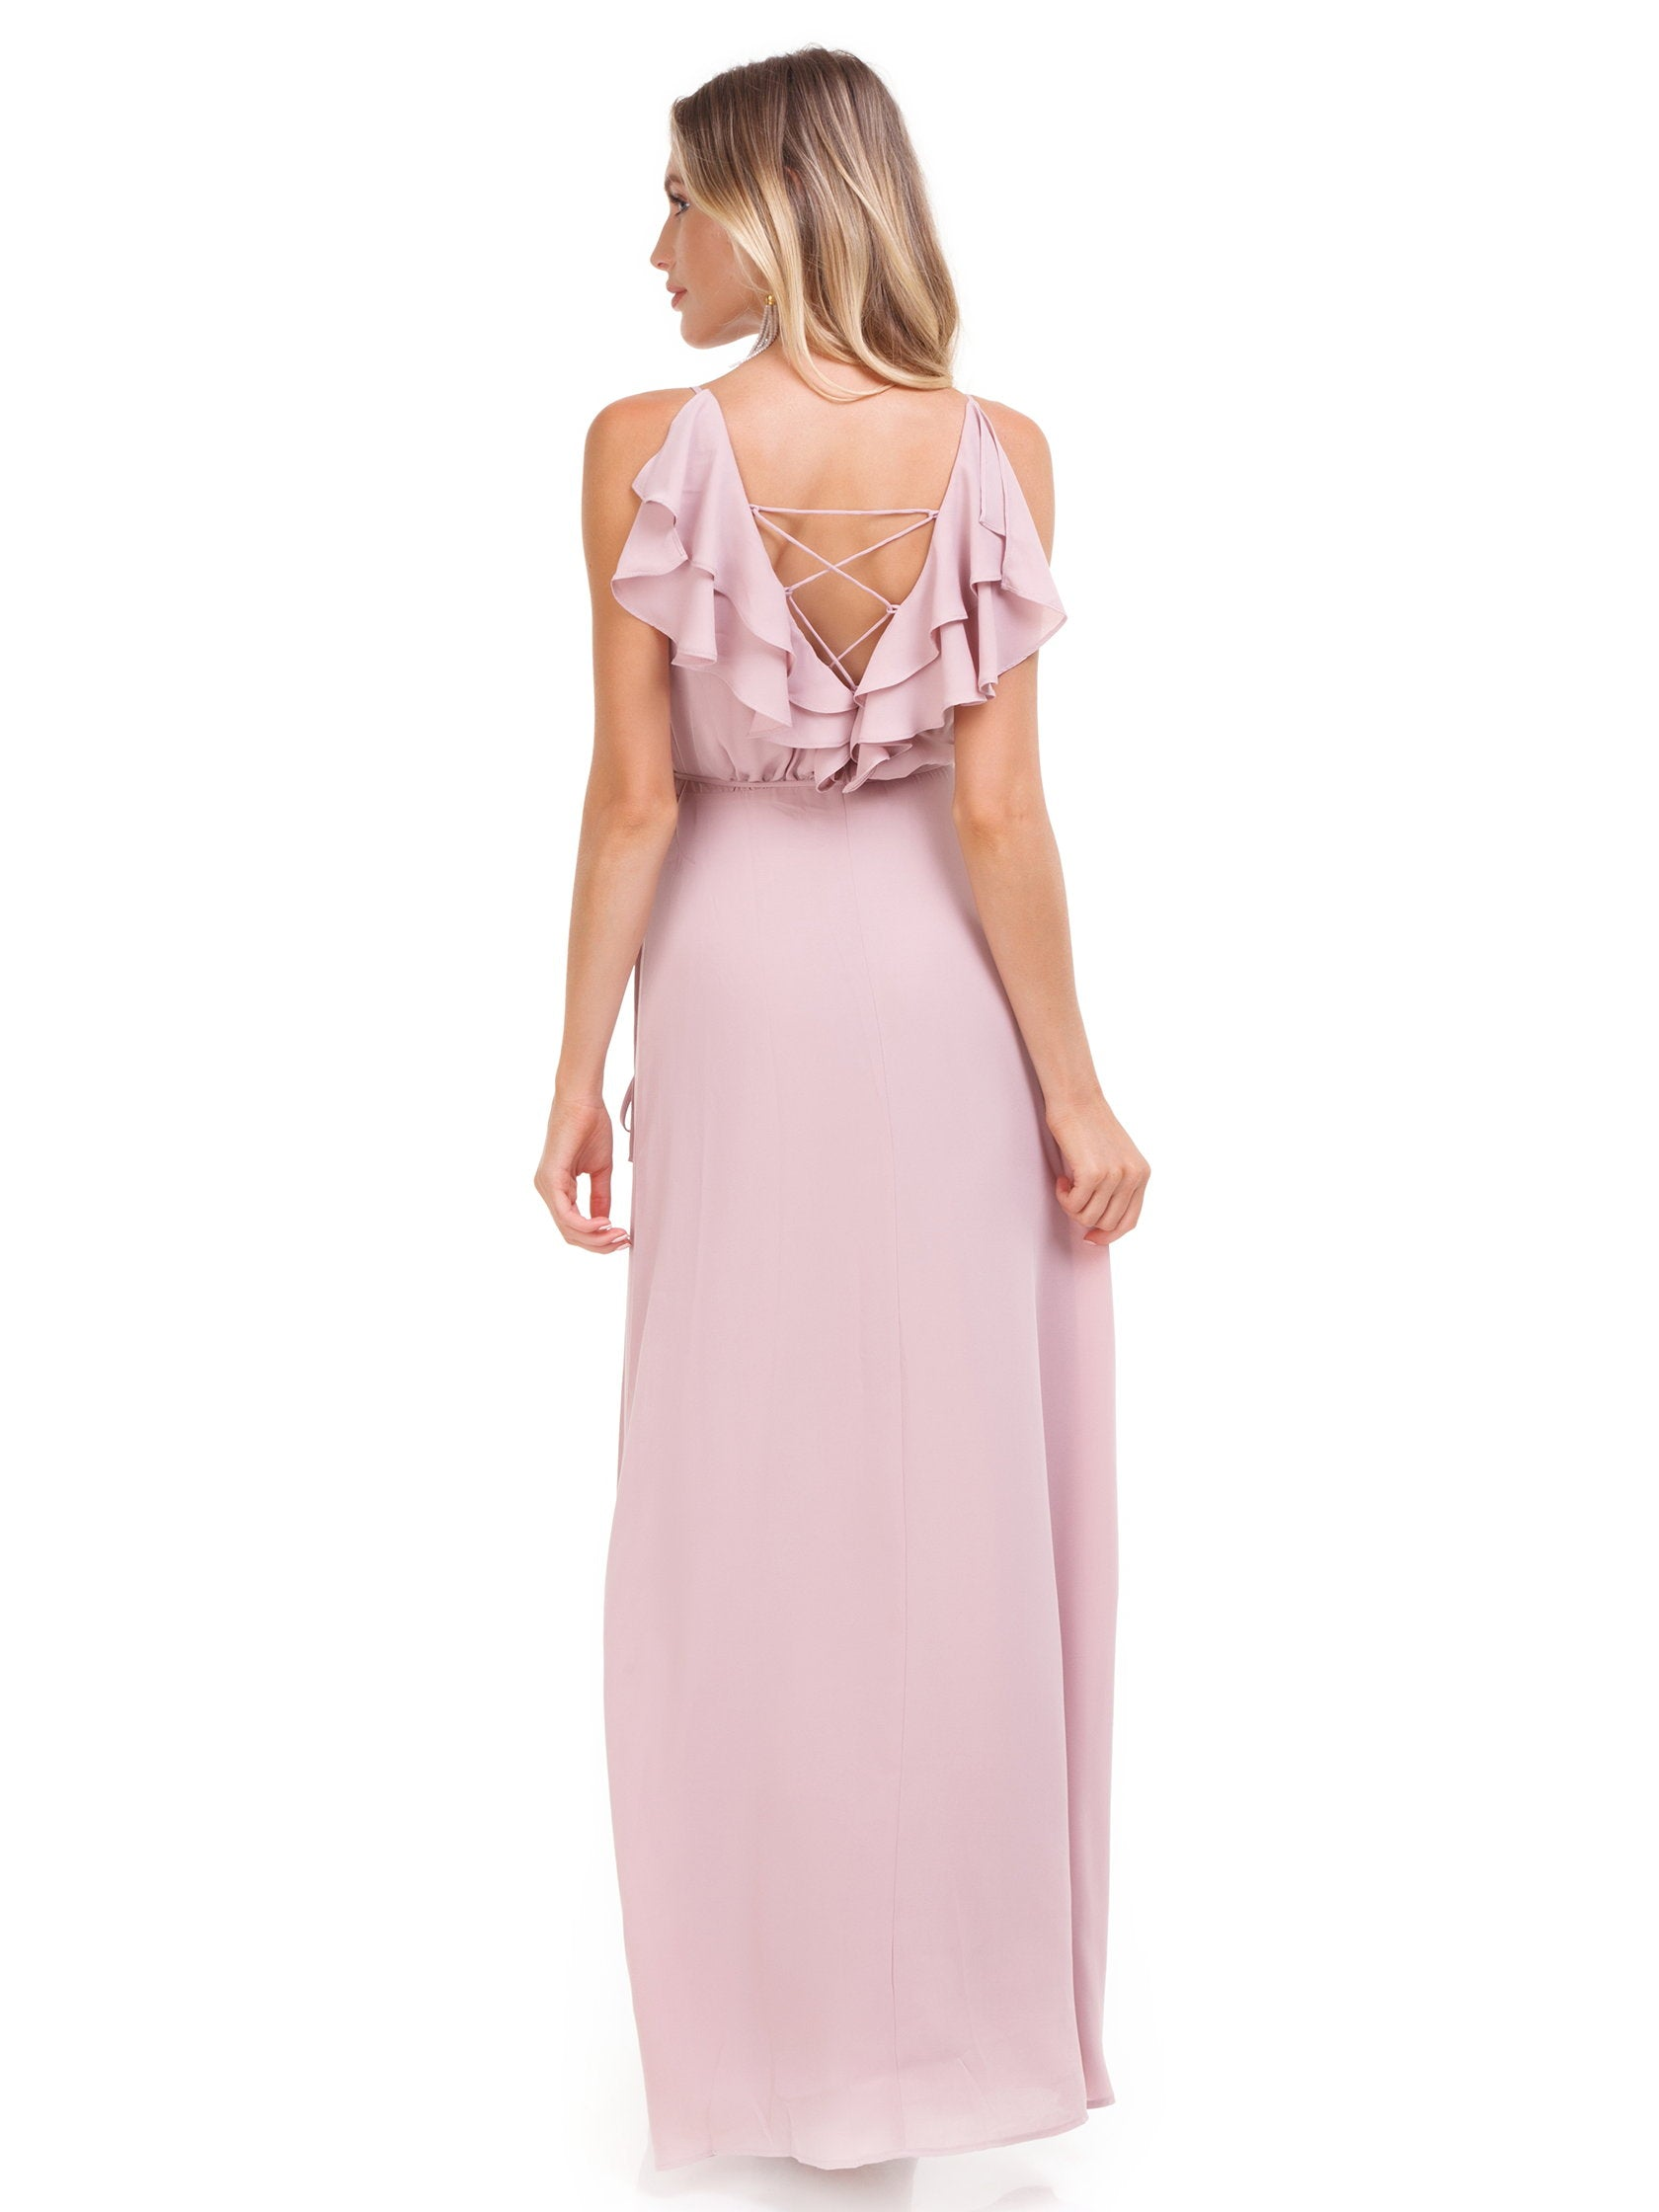 Women wearing a dress rental from WAYF called Jamie Ruffle Wrap Gown